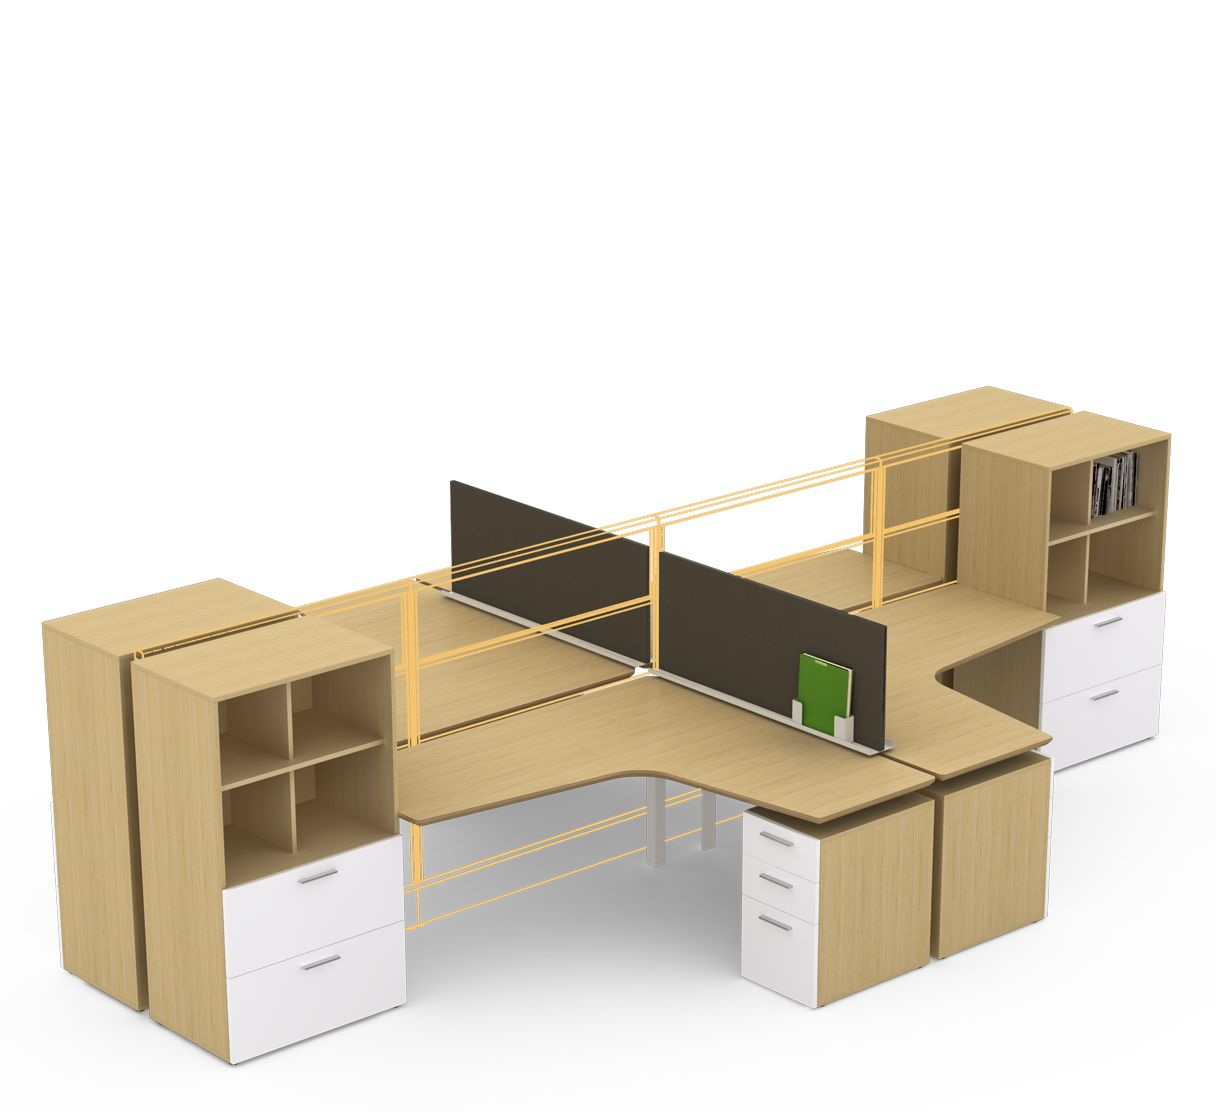 m2 with zo storage can create a built in feel with freestanding rh pinterest ca